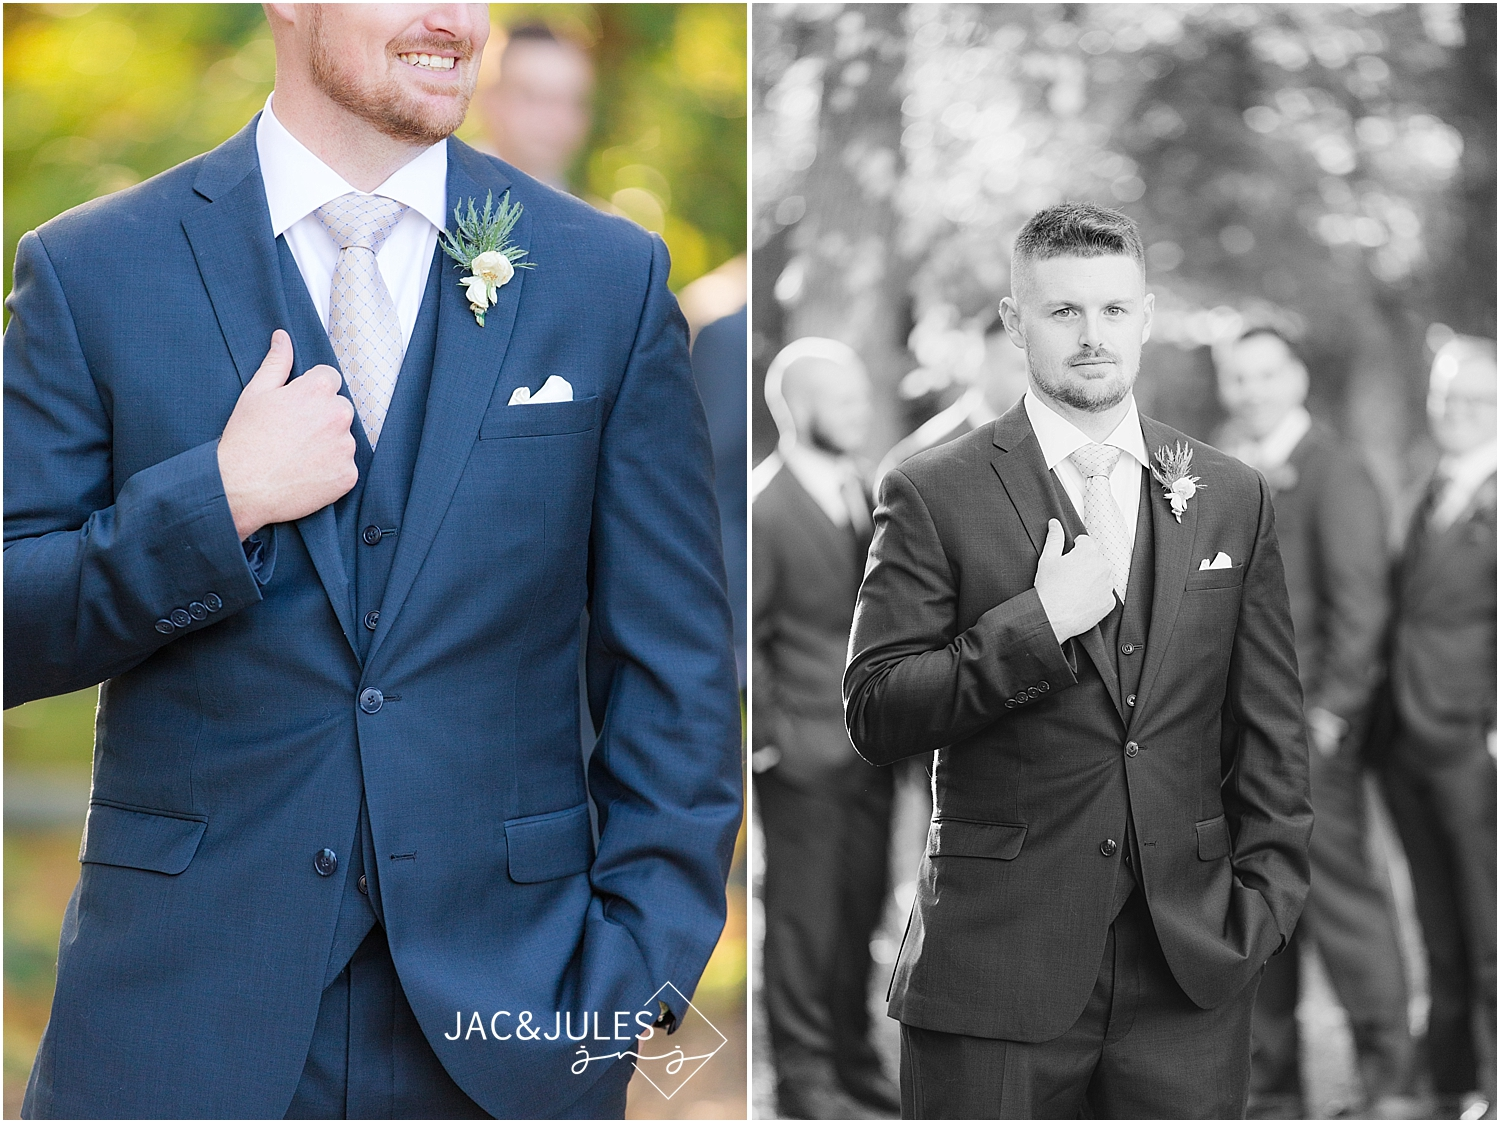 jacnjules photographs groom for his wedding at Allaire State Park, NJ